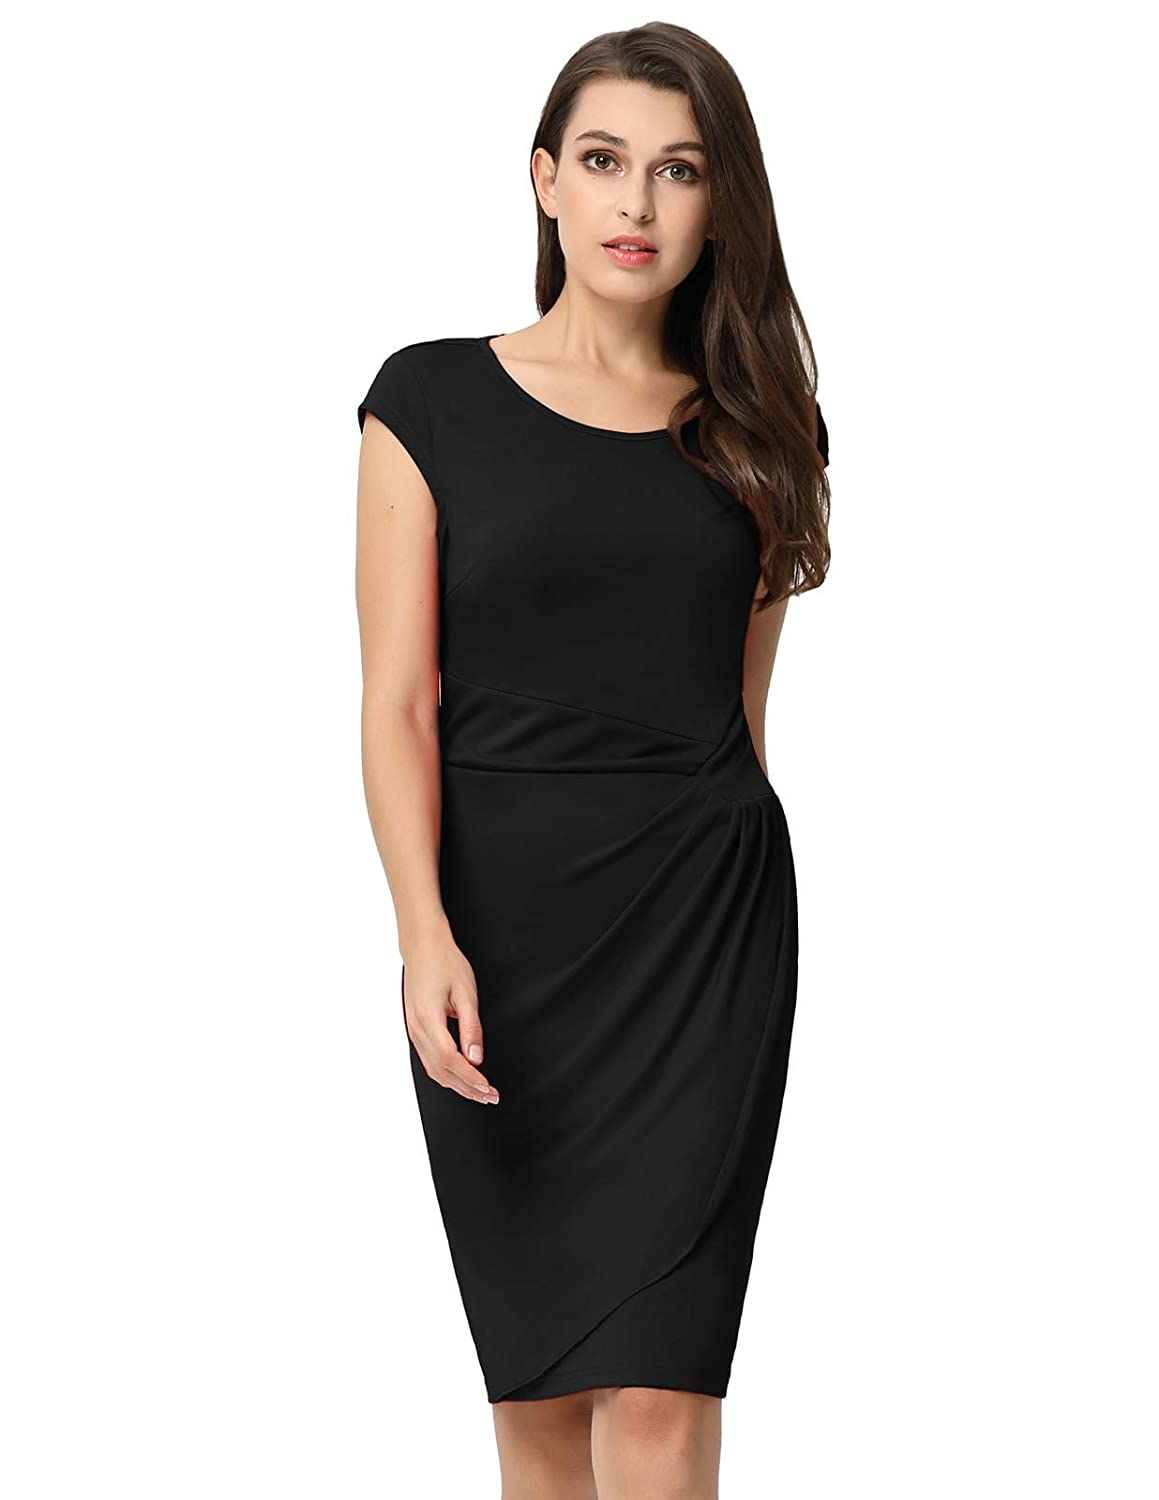 916d4c1d508 Top 10 wholesale 1950s Style Wiggle Dress - Chinabrands.com